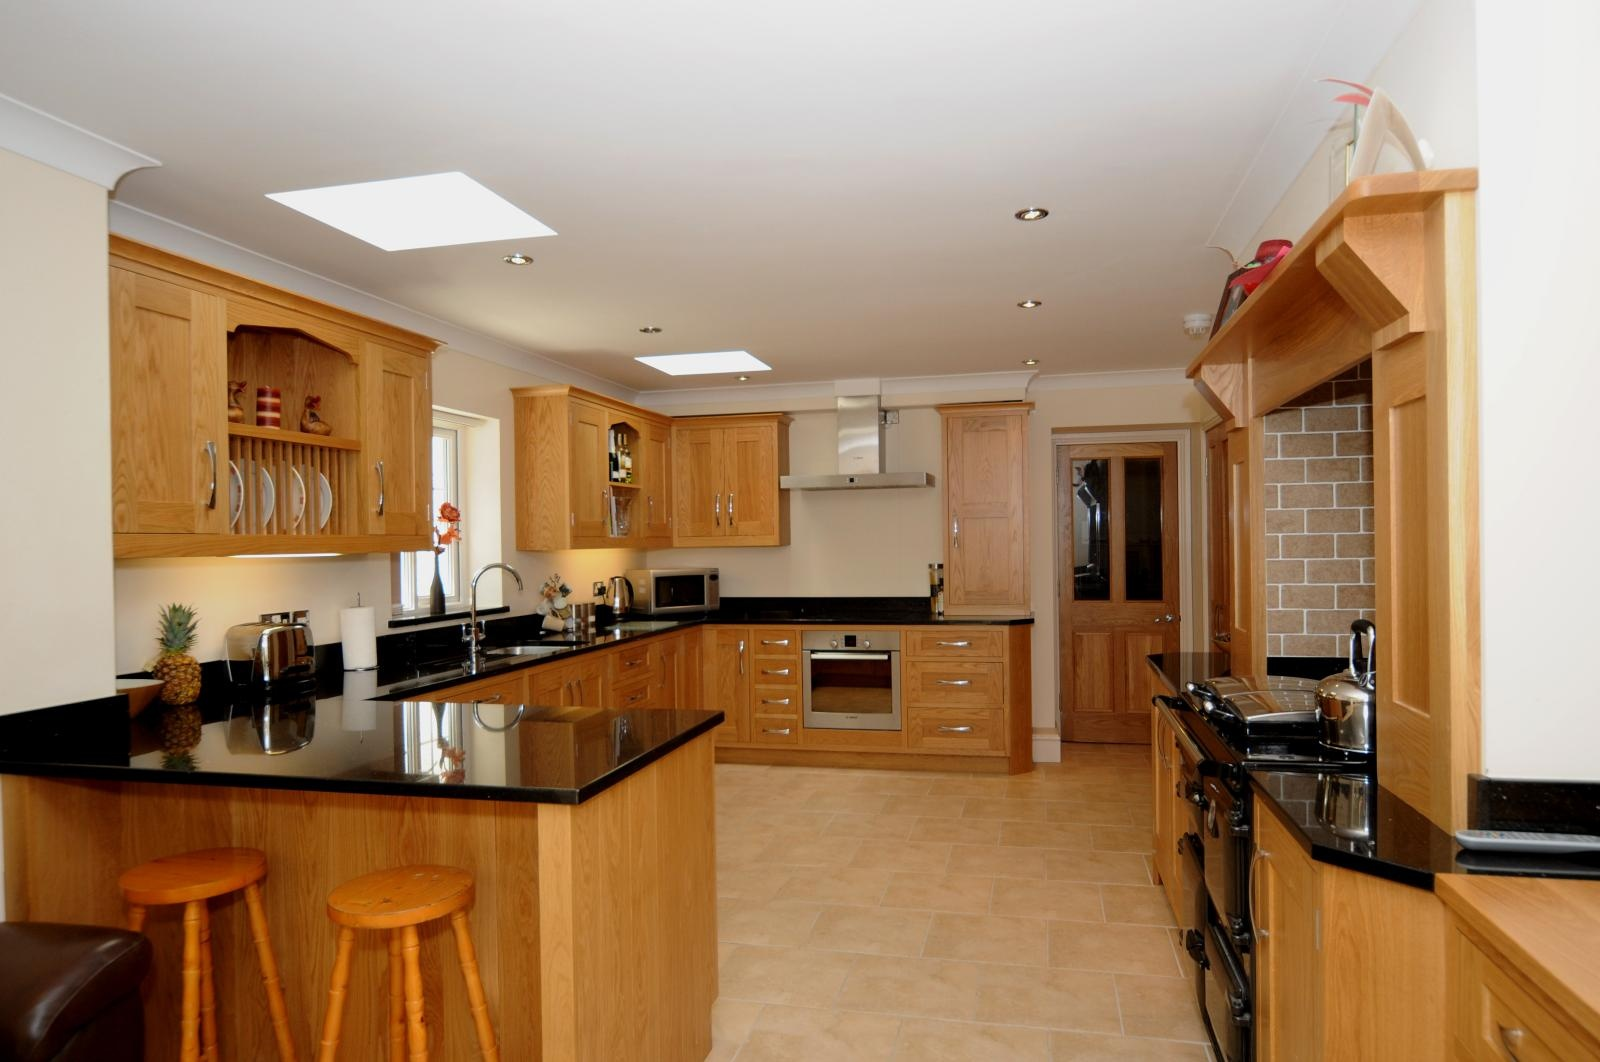 Oak shaker kitchen st davids mark stone 39 s welsh kitchens bespoke kitchens and furnuture made - Images of kitchens ...